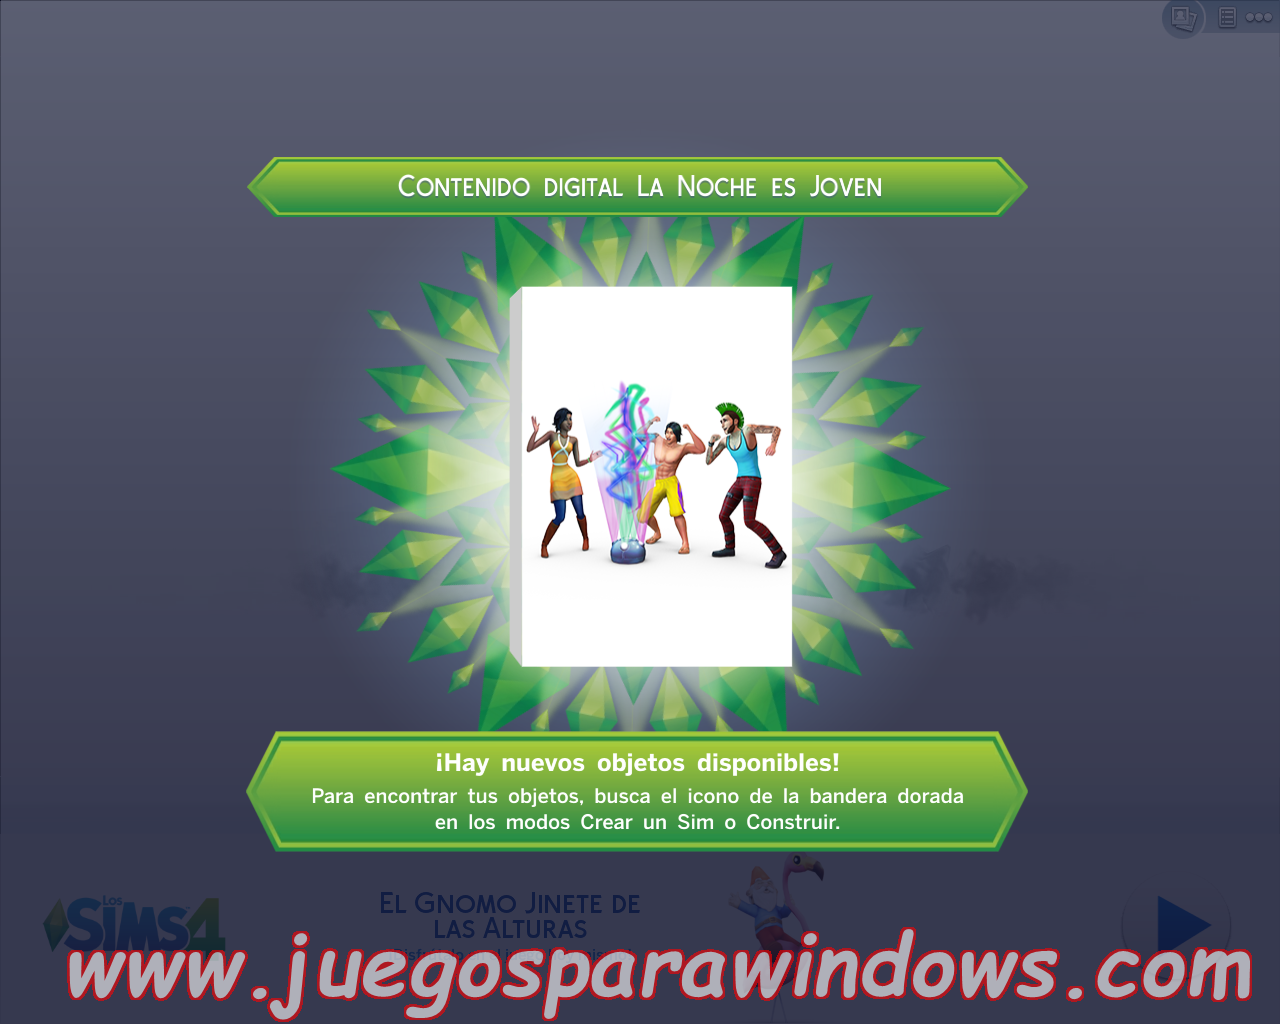 Los Sims 4 Digital Deluxe Edition ESPAÑOL PC Full + Update v1.4.83.1010 Incl DLC (RELOADED) 2